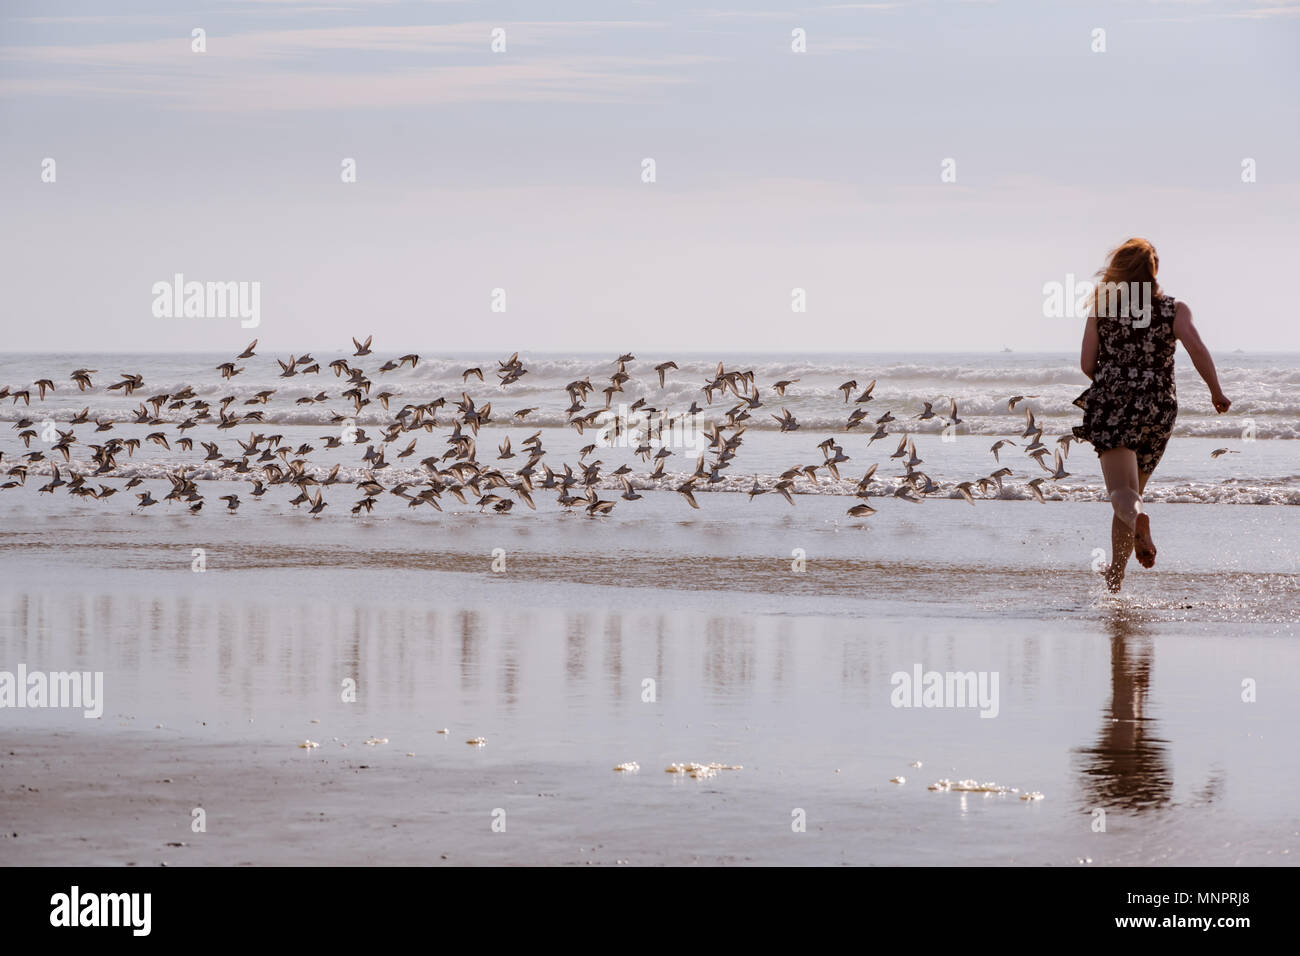 Woman running on wet sand chasing Sandpiper birds, having fun playing at the beach. - Stock Image